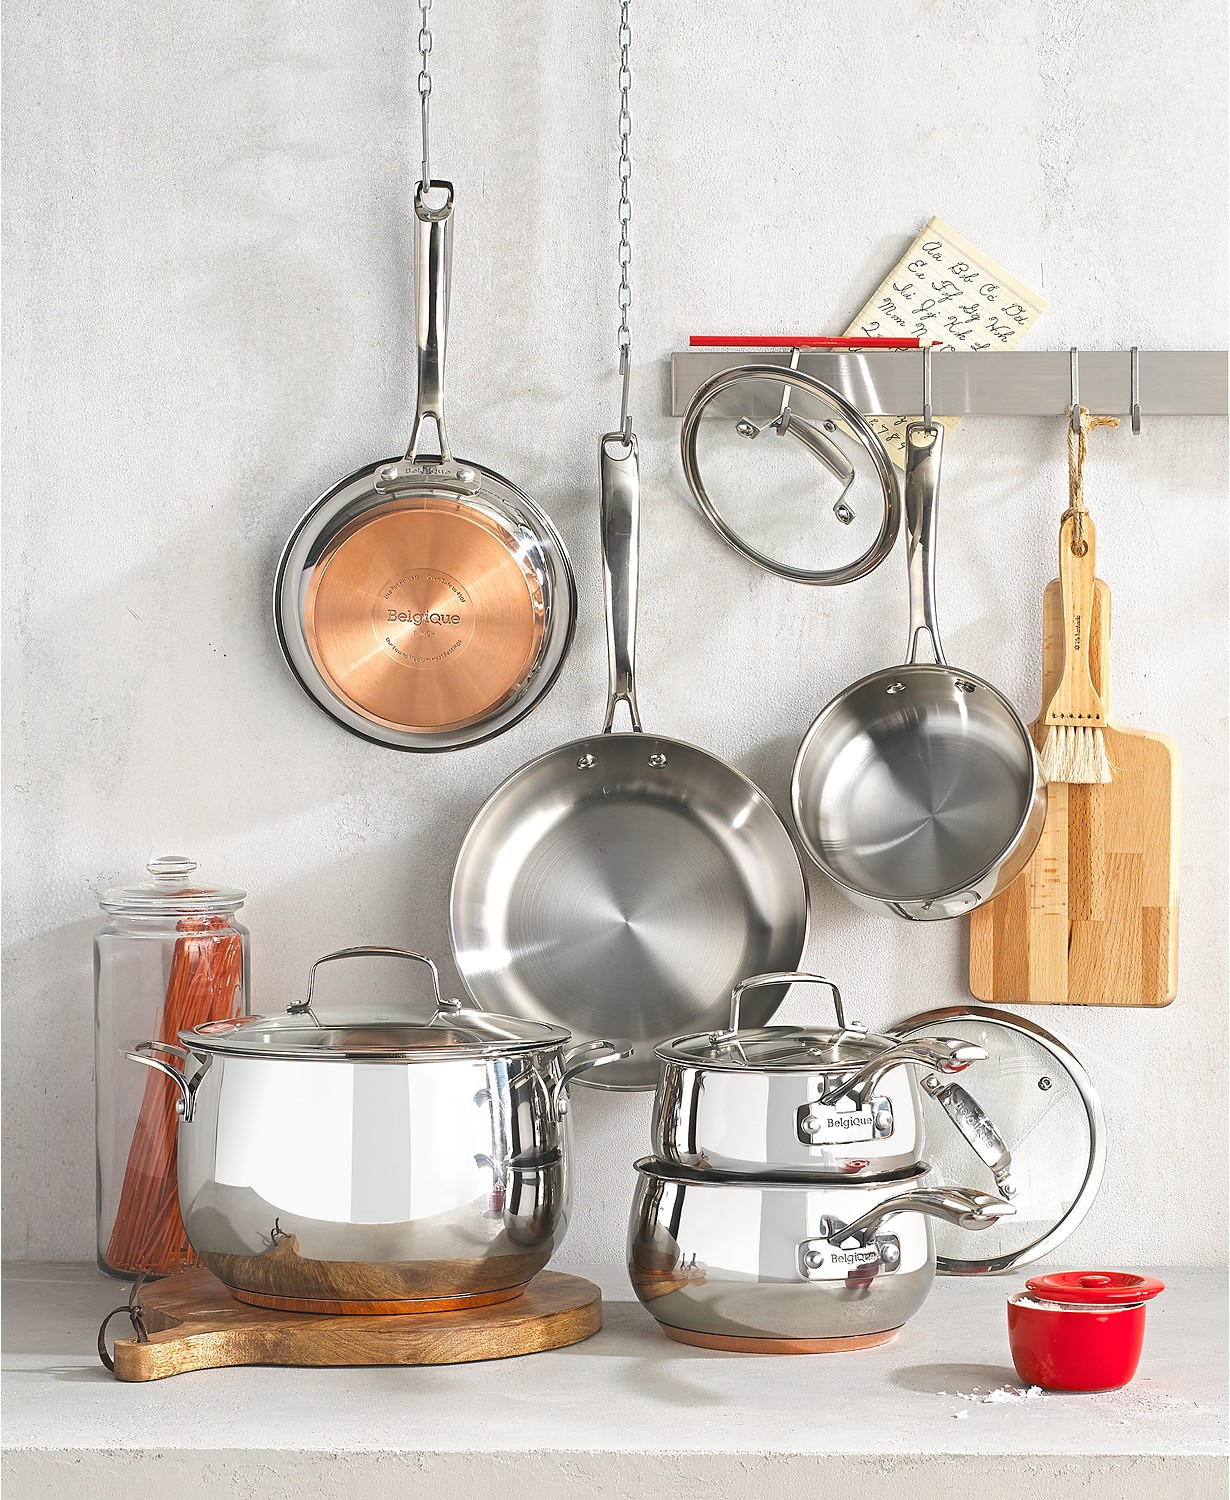 Belgique Cookware Review - The 5 Best Sets You Need To See